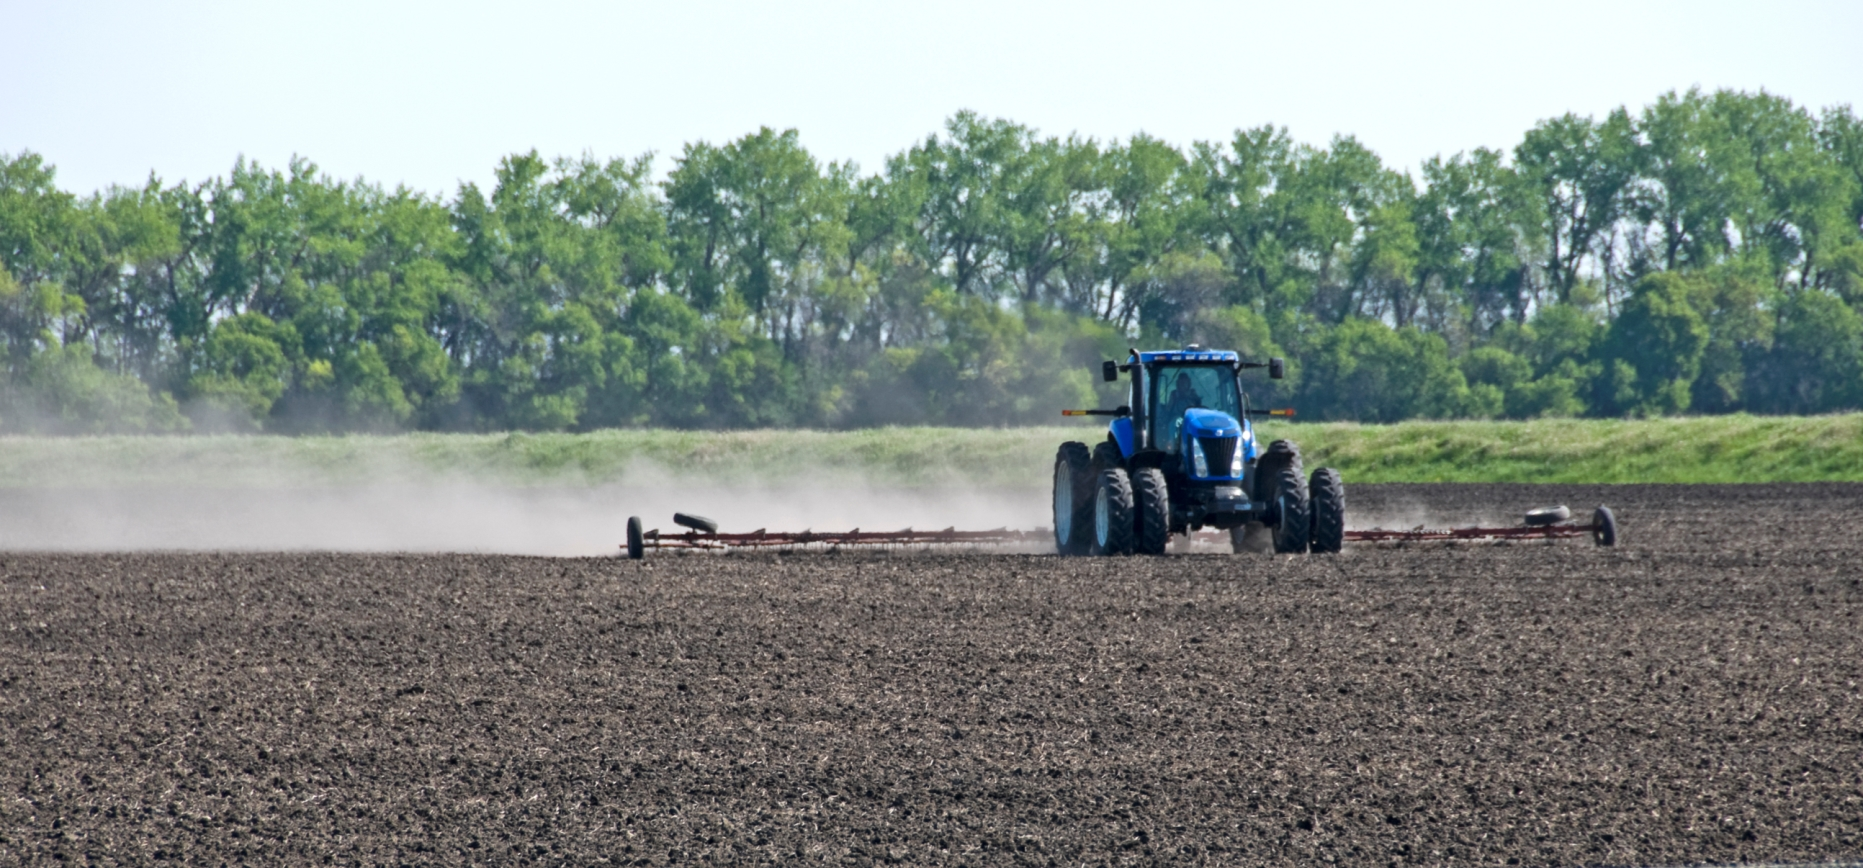 Blue-Tractor-Dragging-Field6